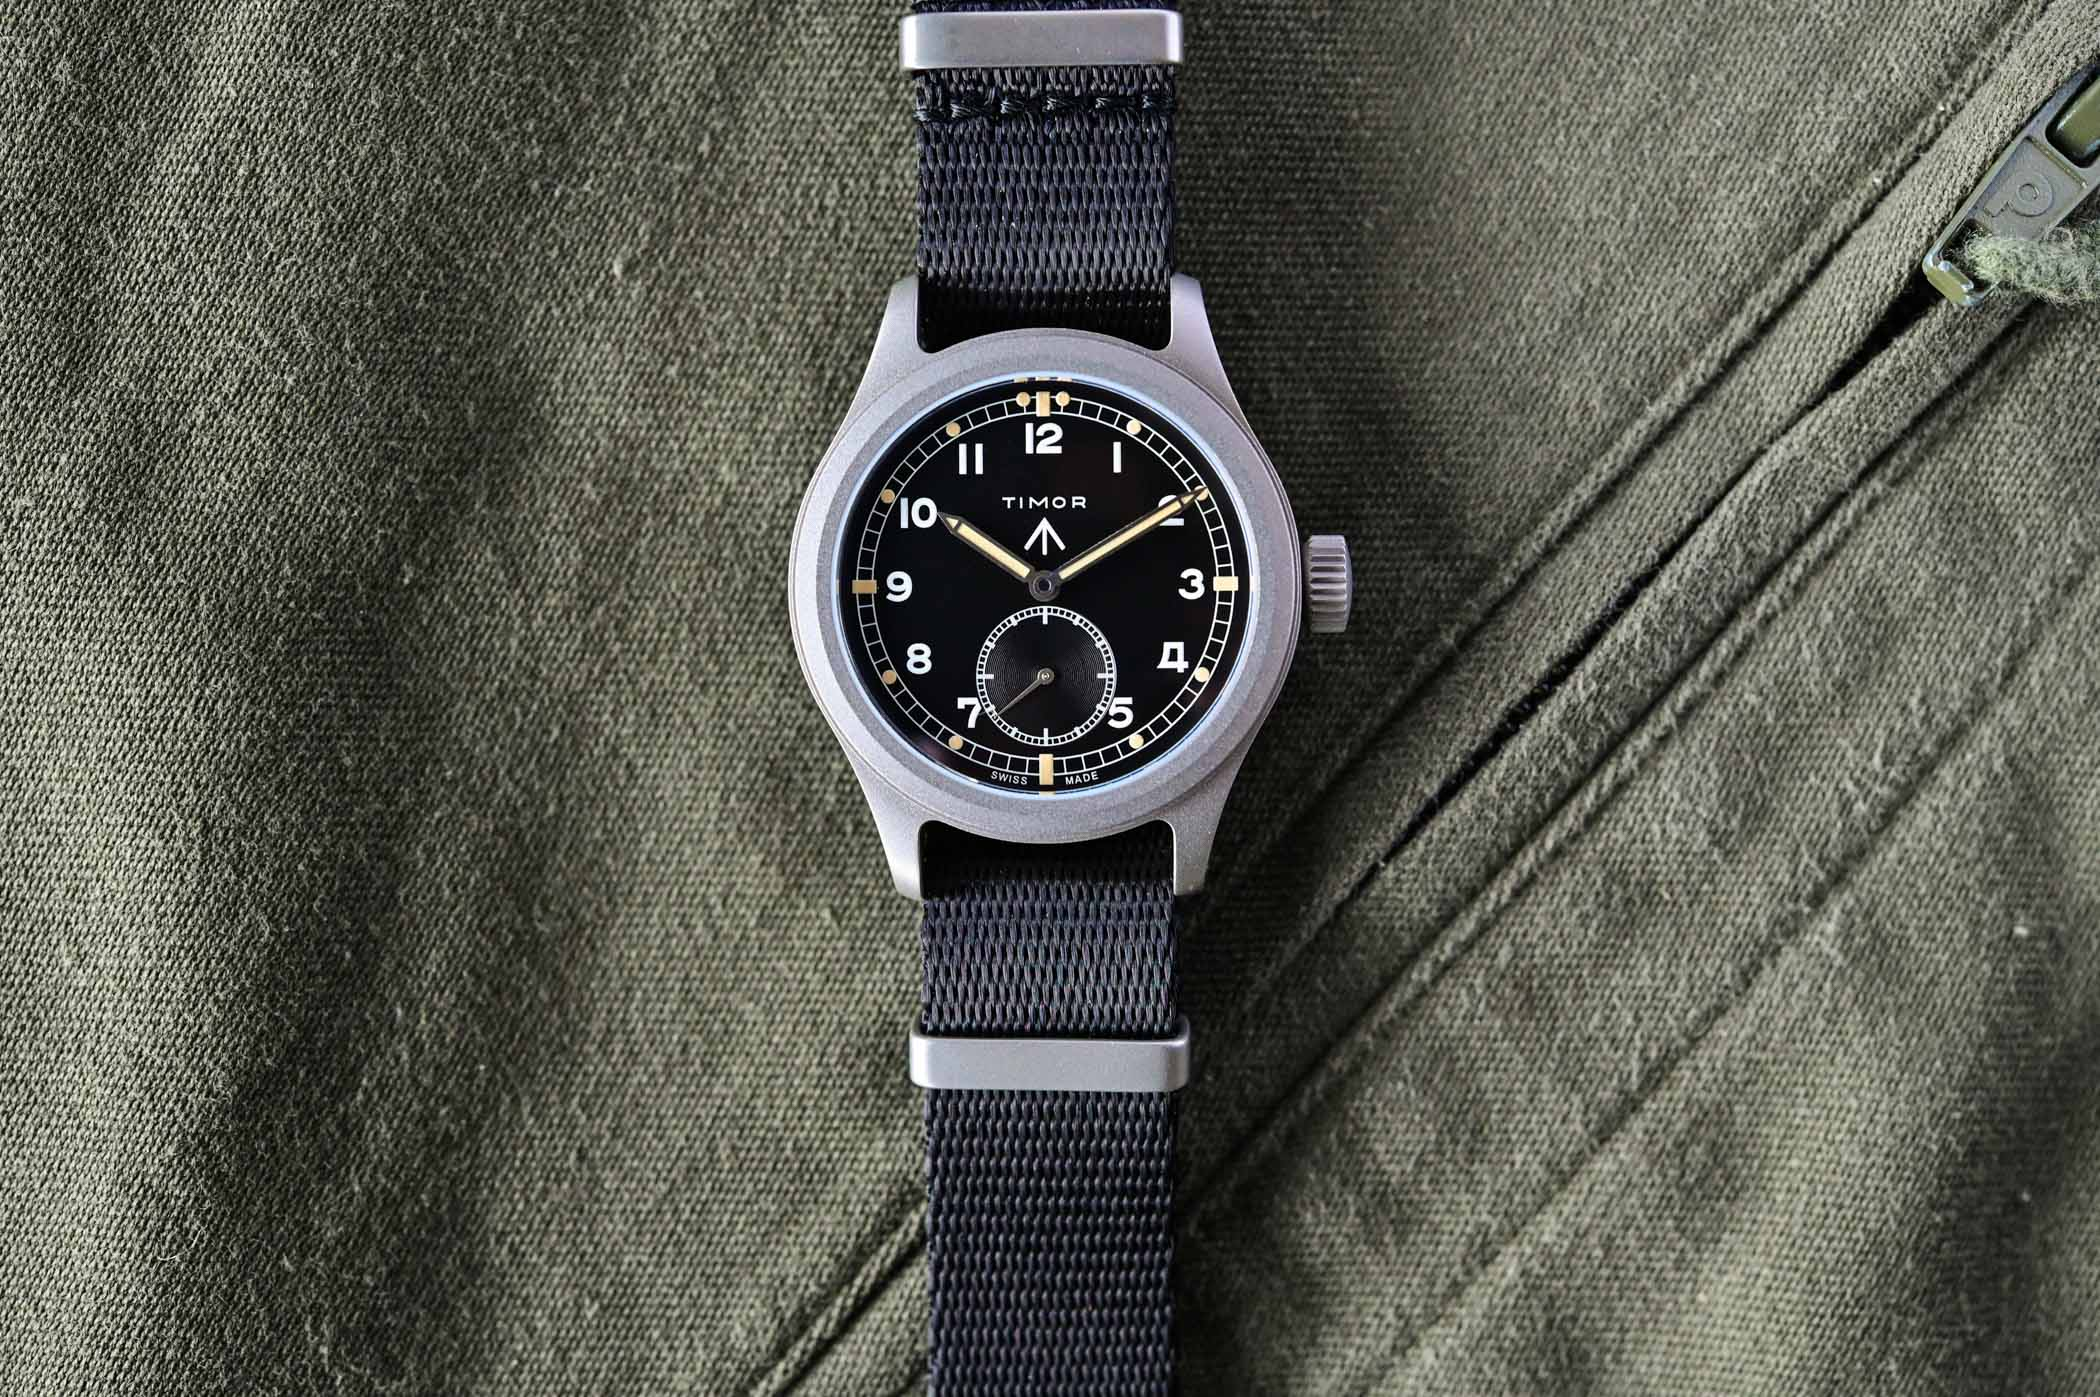 battle of accessible British military-inspired watches - comparative review Hamilton Khaki Pilot Pioneer Mechanical versus Timor Heritage Field - 15